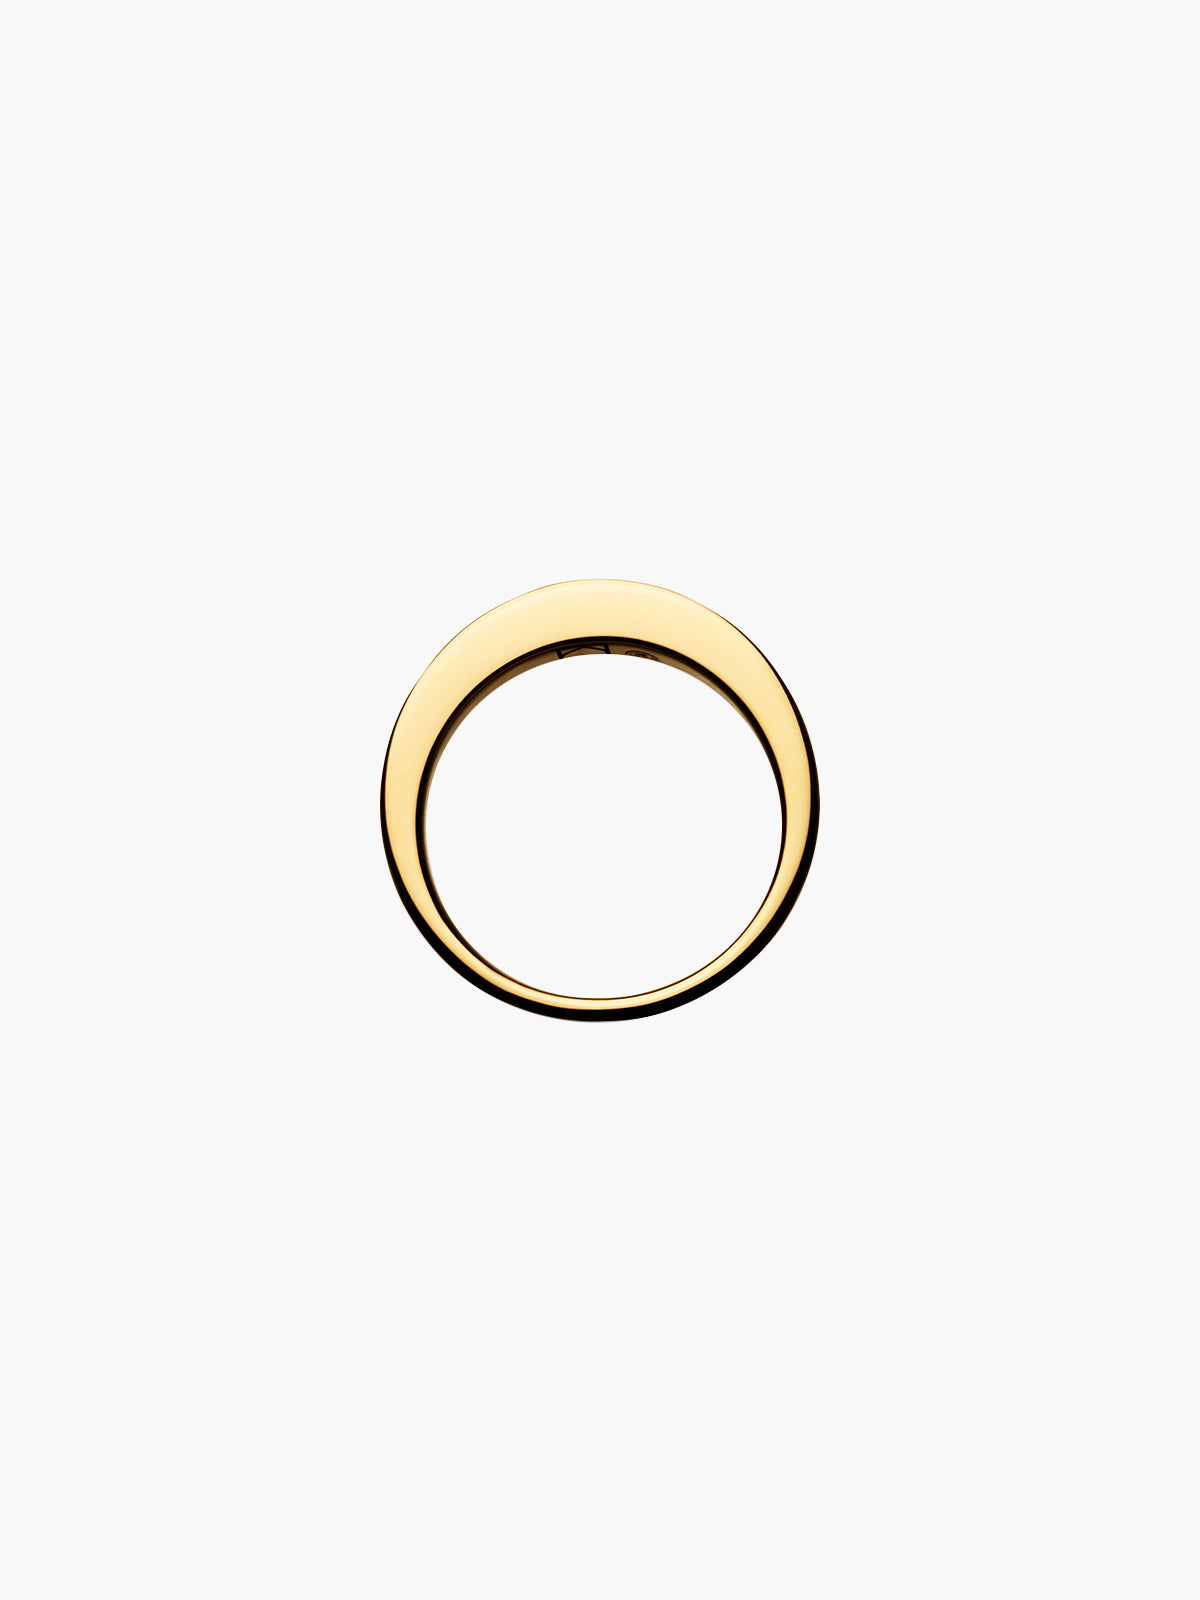 Gold Eclipse Ring Gold Eclipse Ring